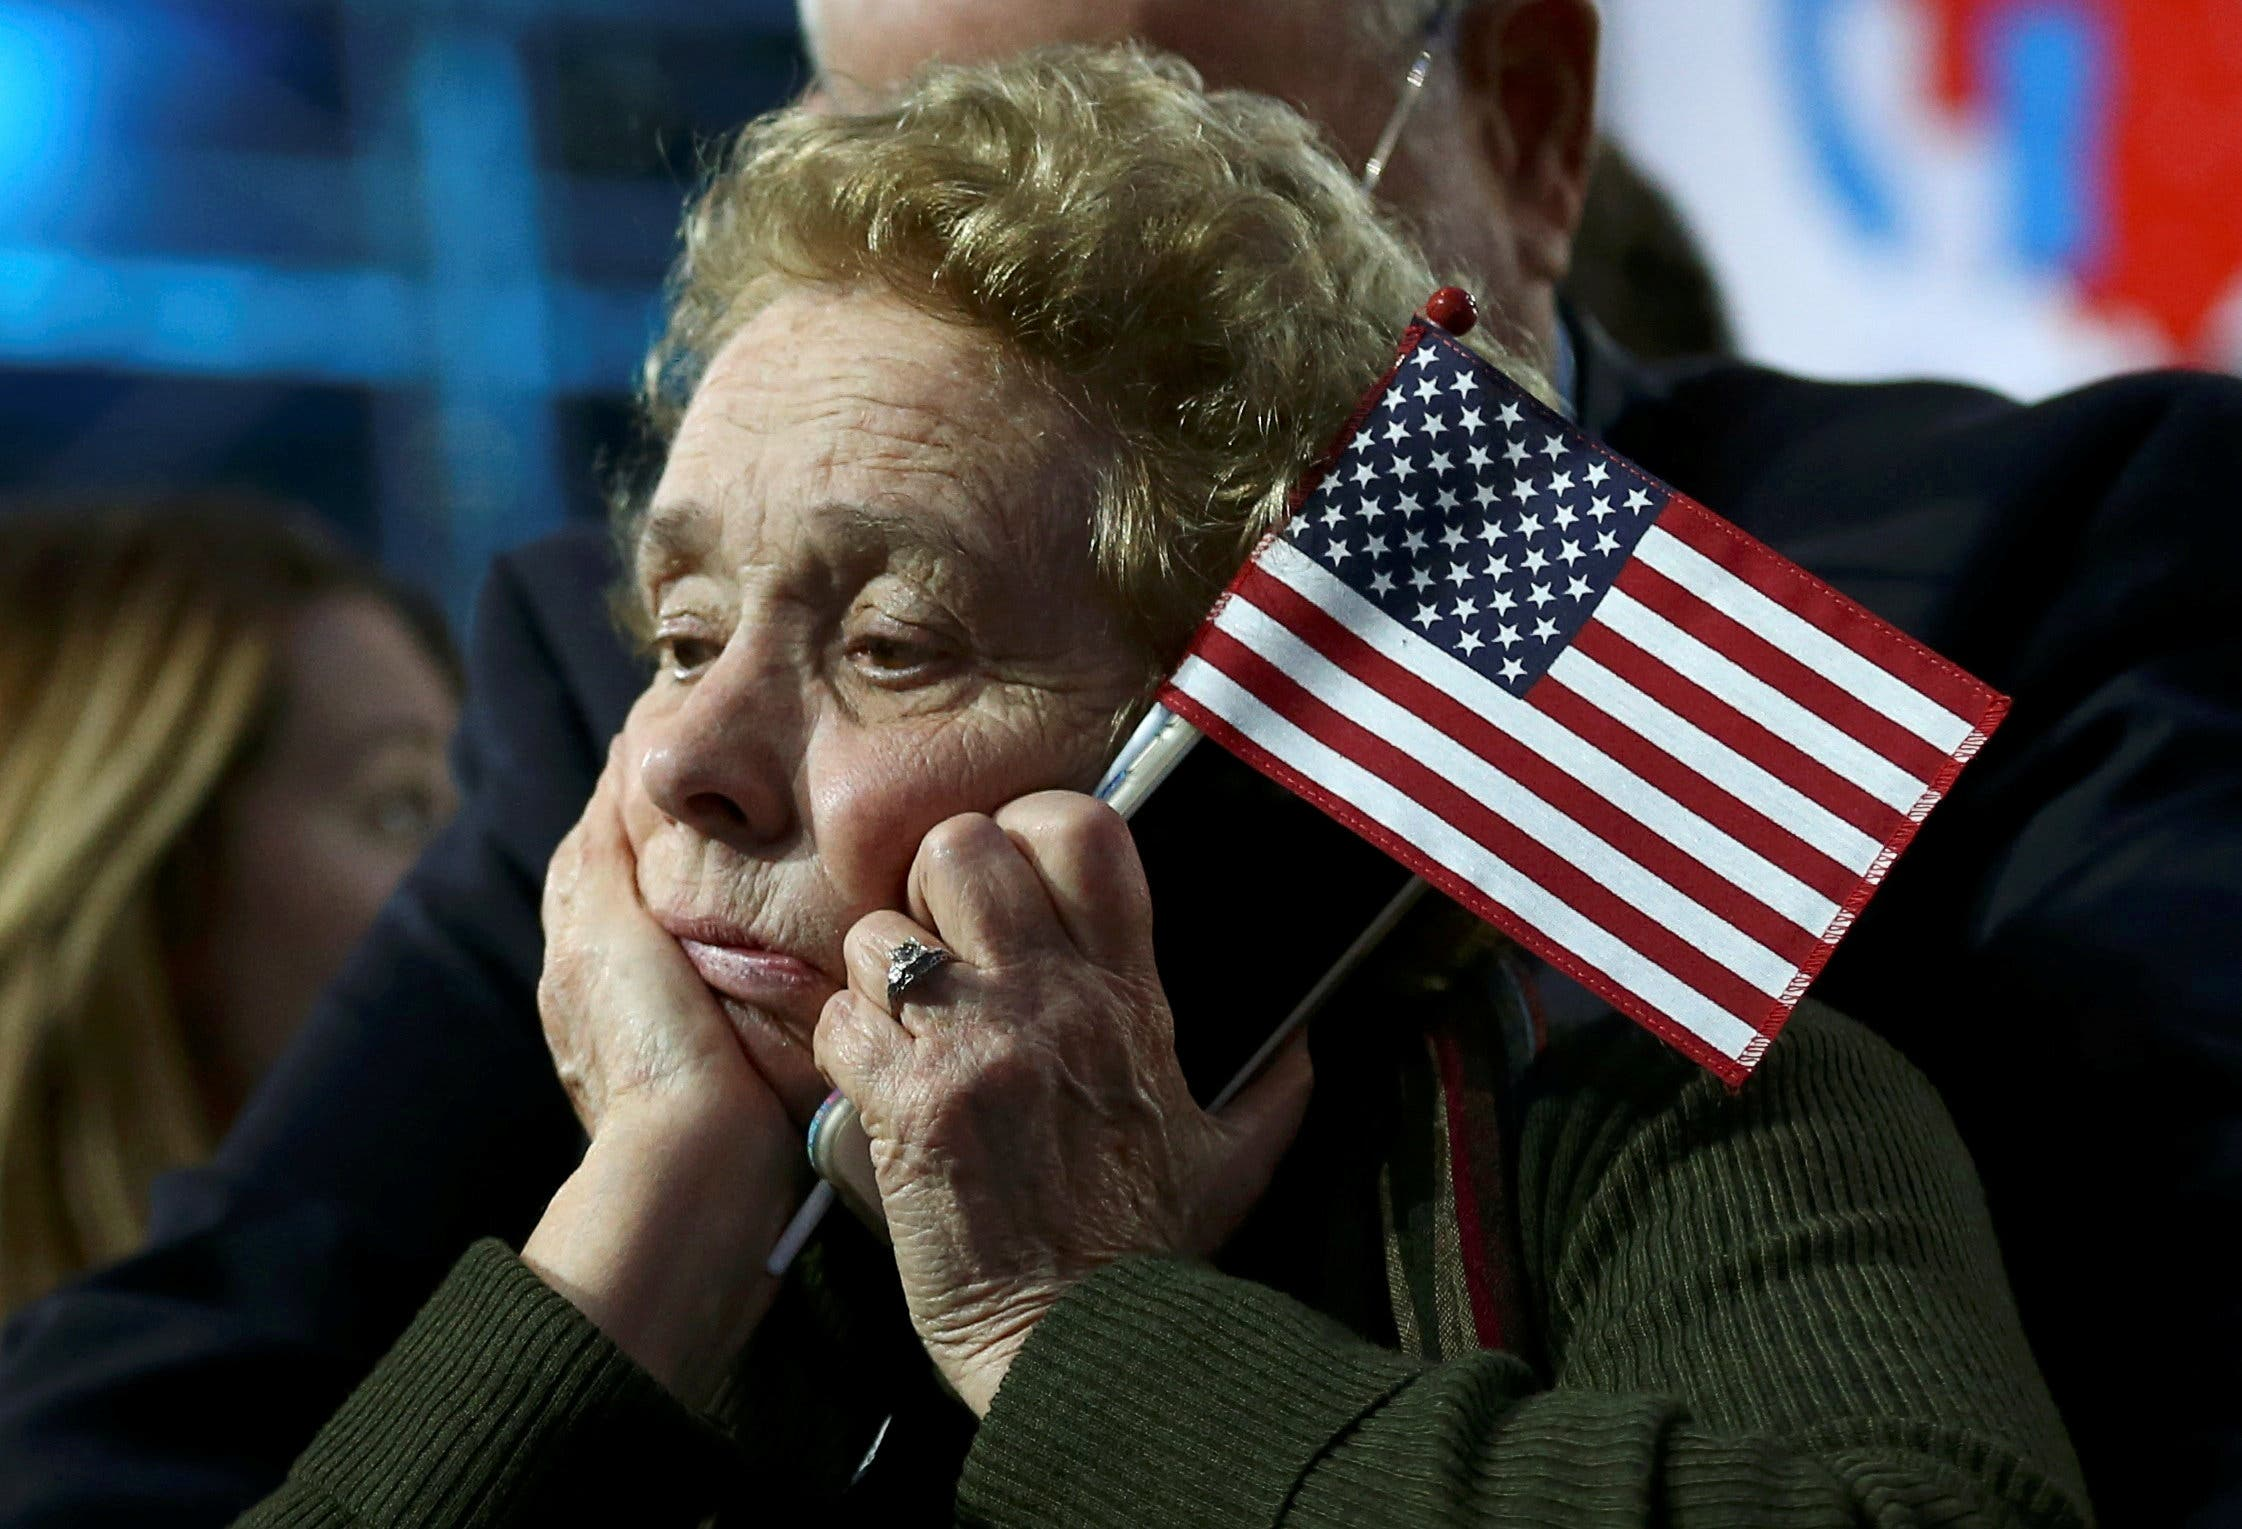 A supporter of Democratic presidential nominee Hillary Clinton watches and waits at her election night rally in New York, U.S., November 8, 2016. (Reuters)